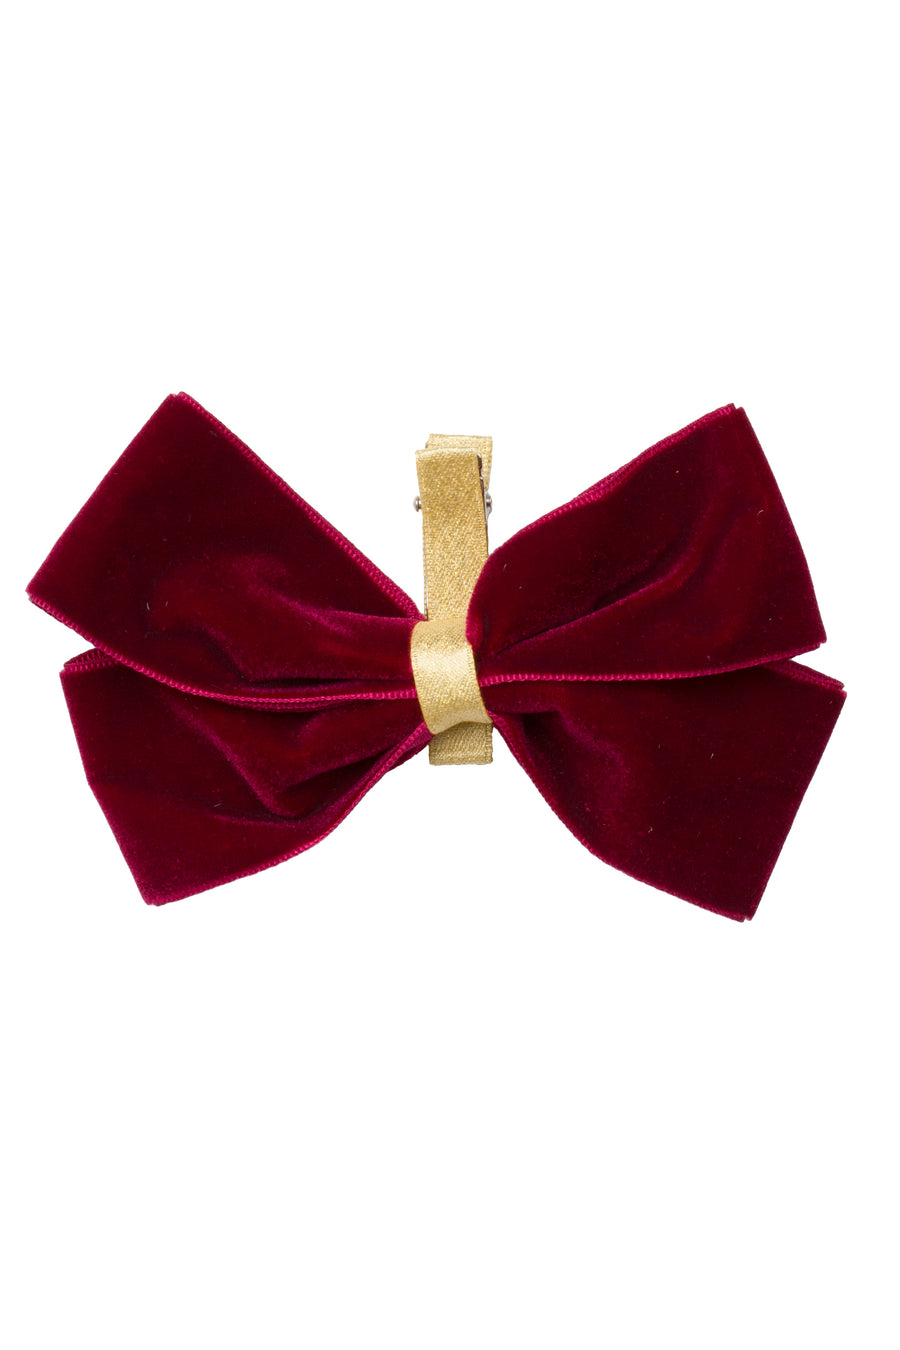 Heather Velvet Clip - Cranberry